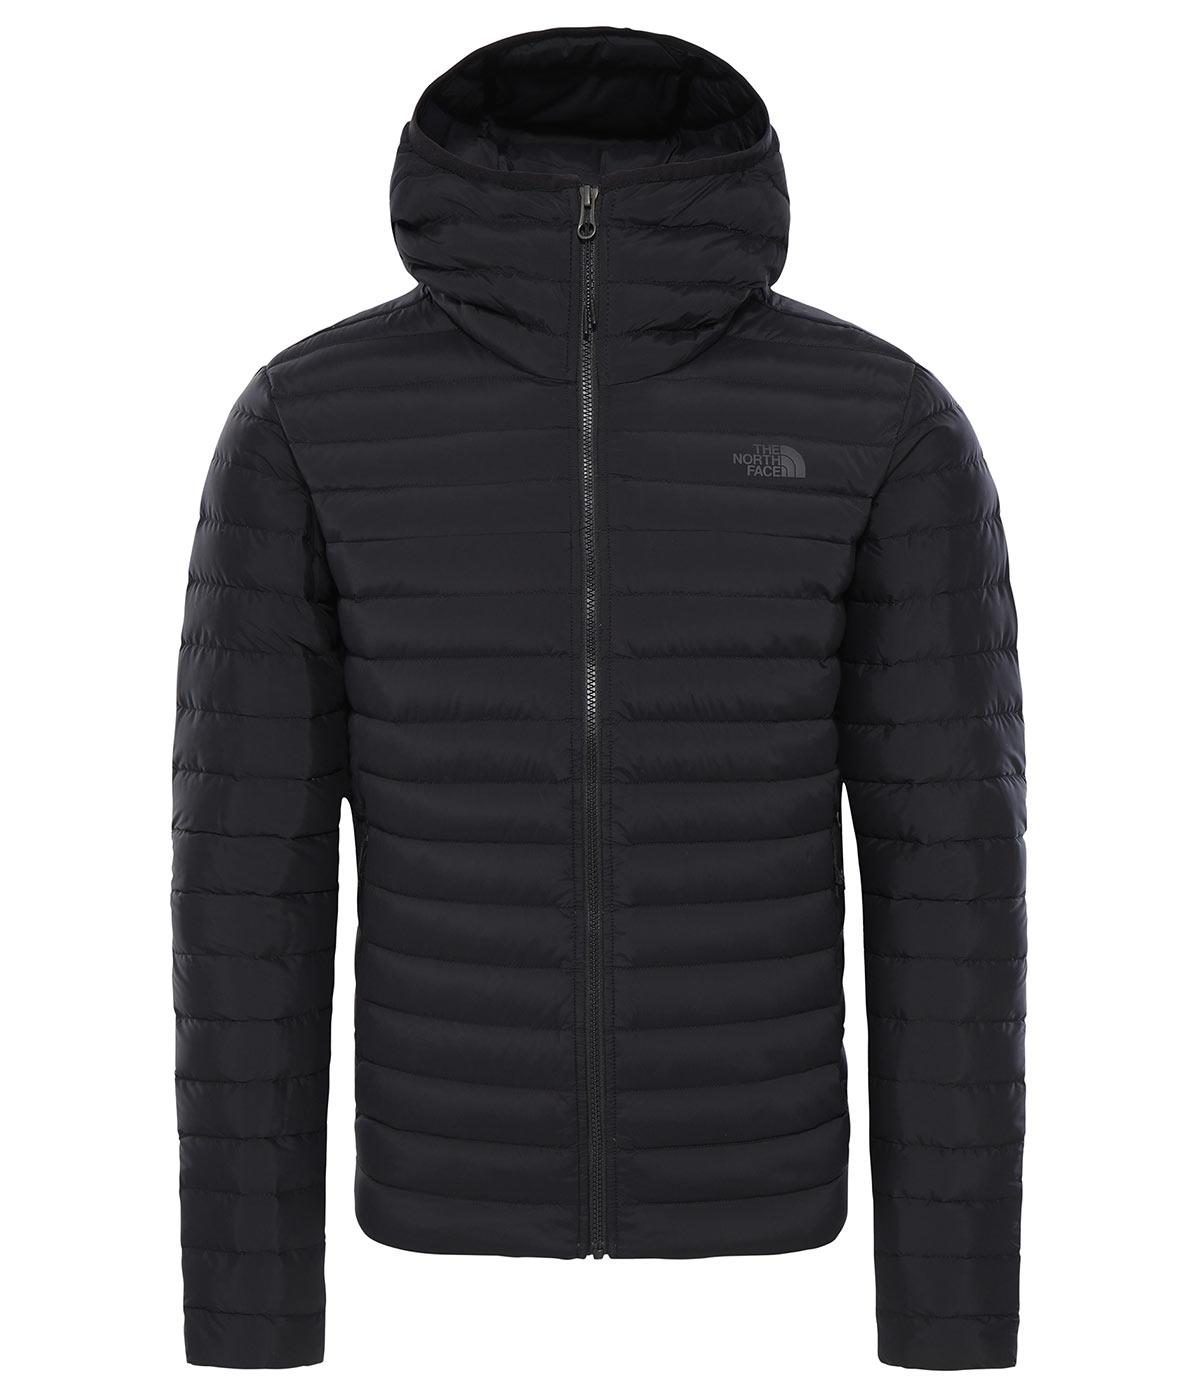 The North Face Erkek Strch Dwn Hdıe Ceket NF0A3Y55JK31